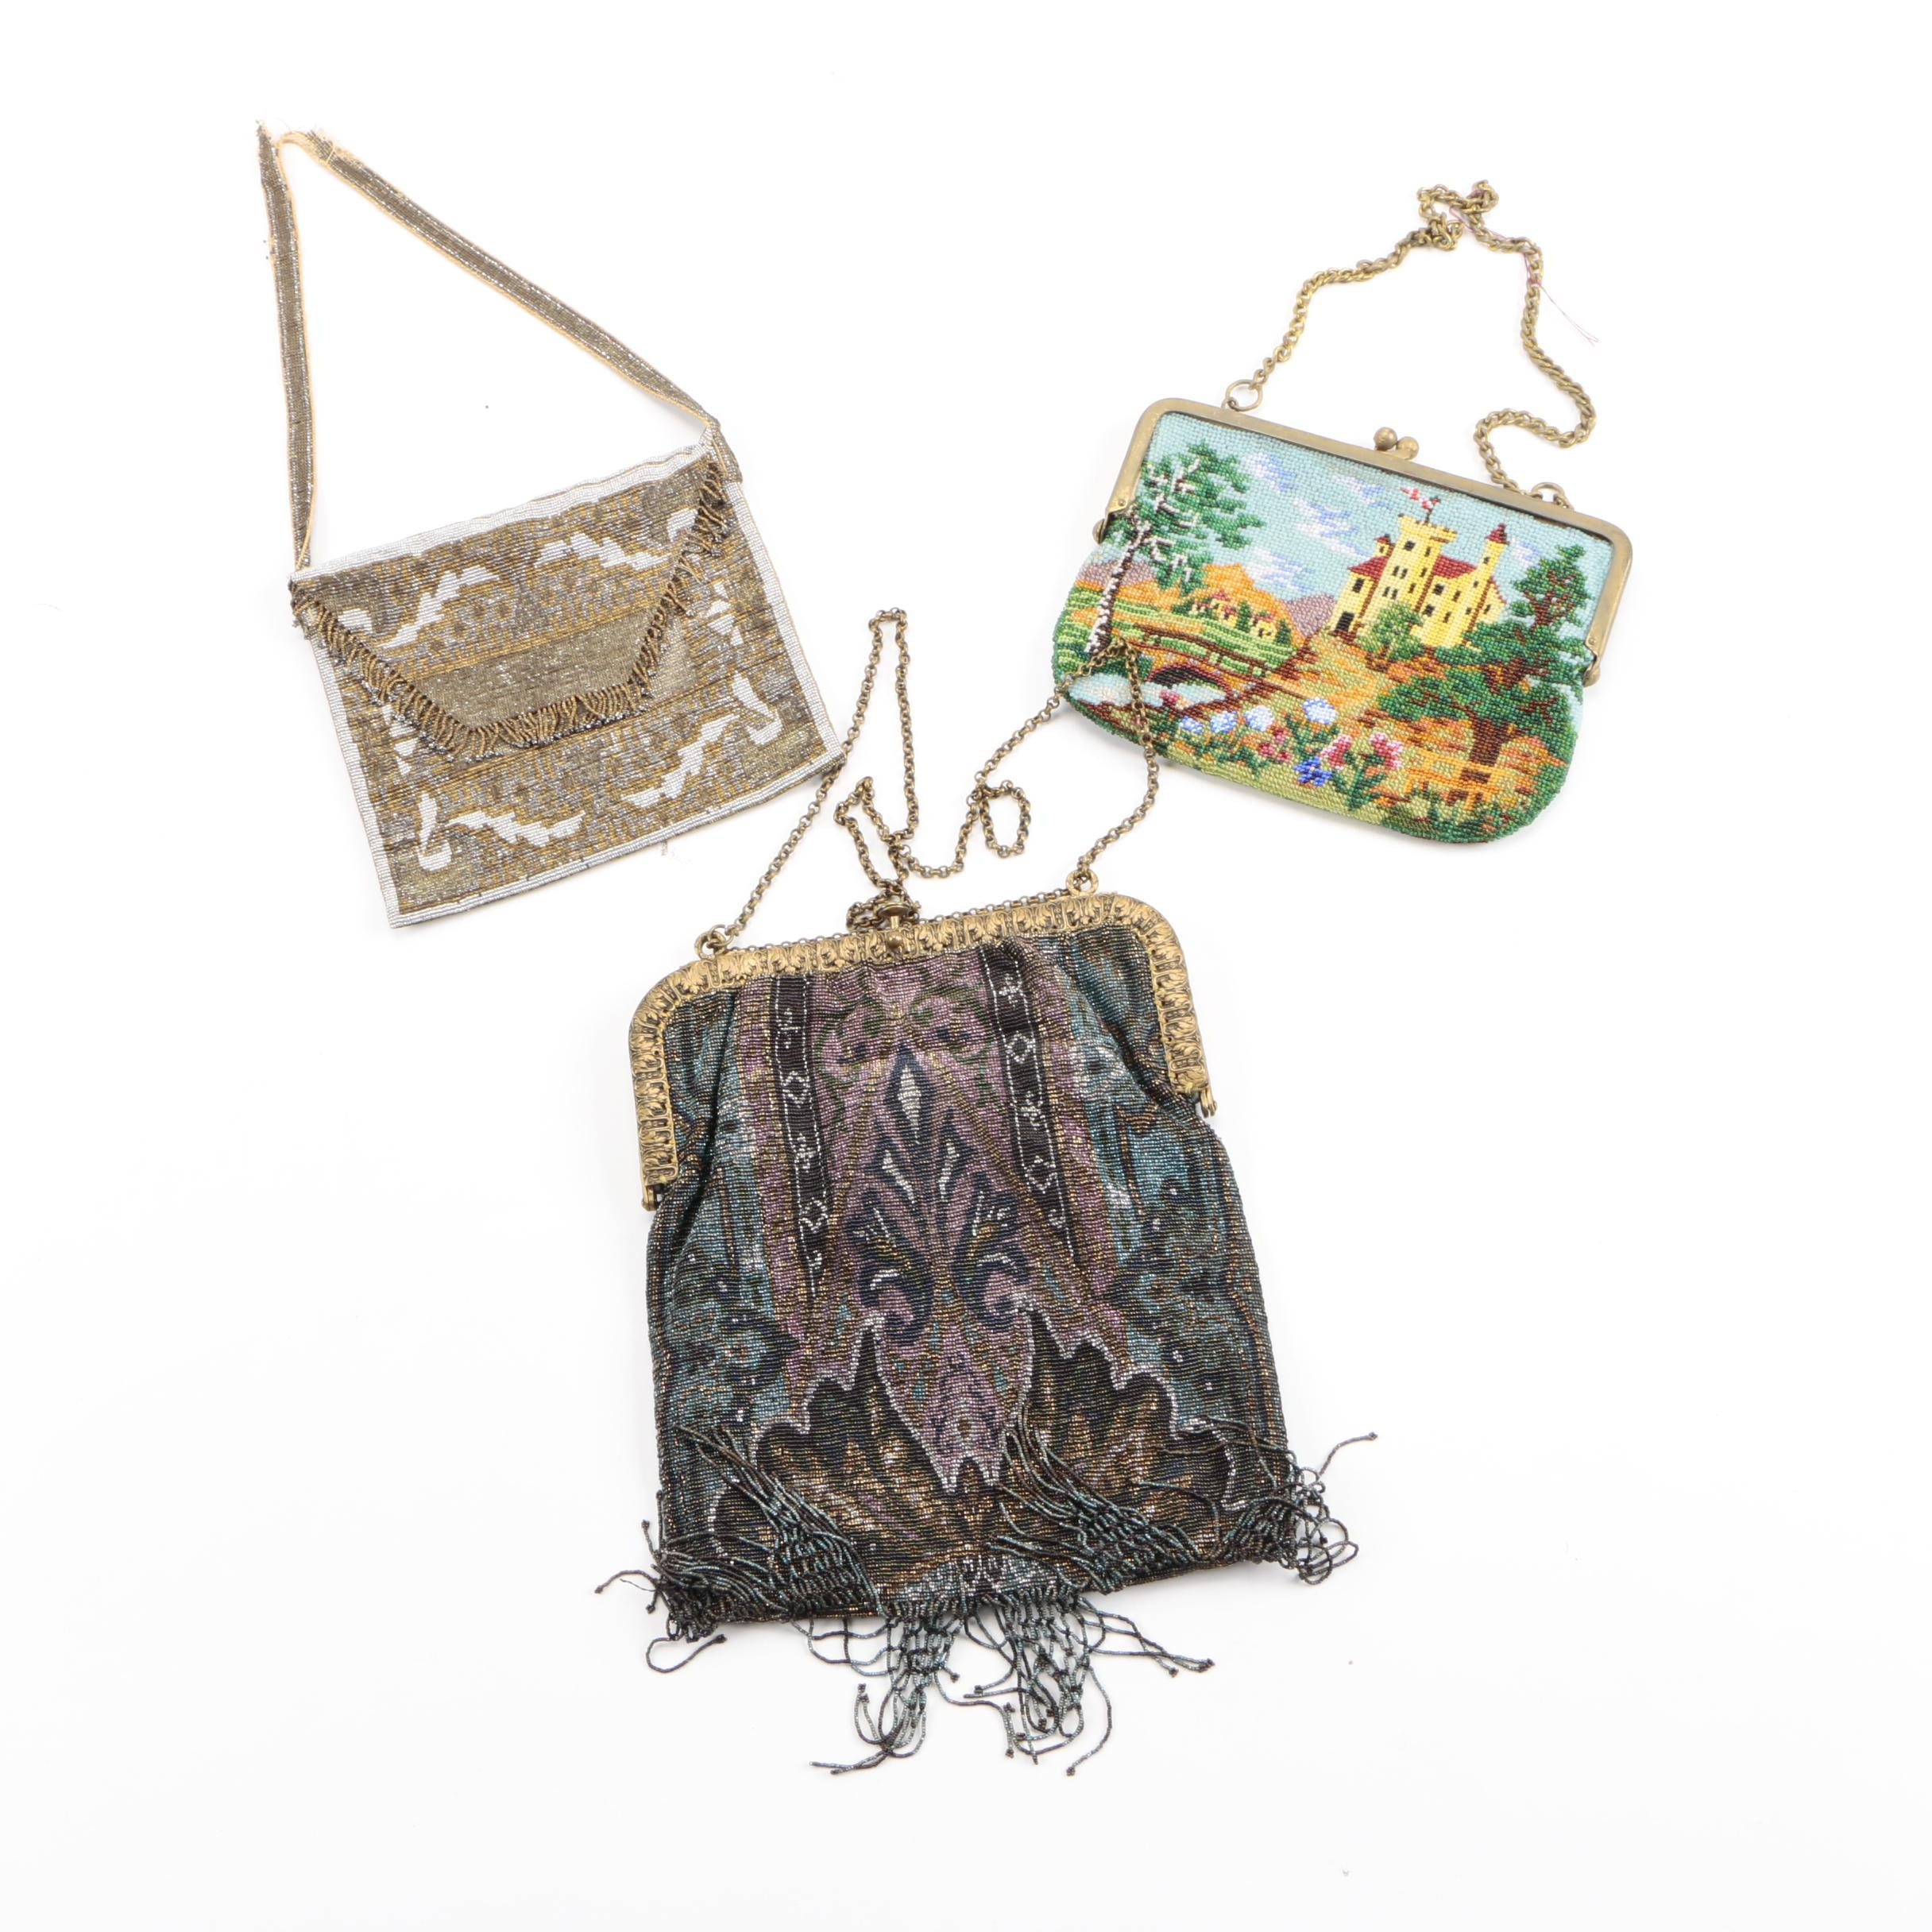 Antique & Vintage Small Beaded Purses